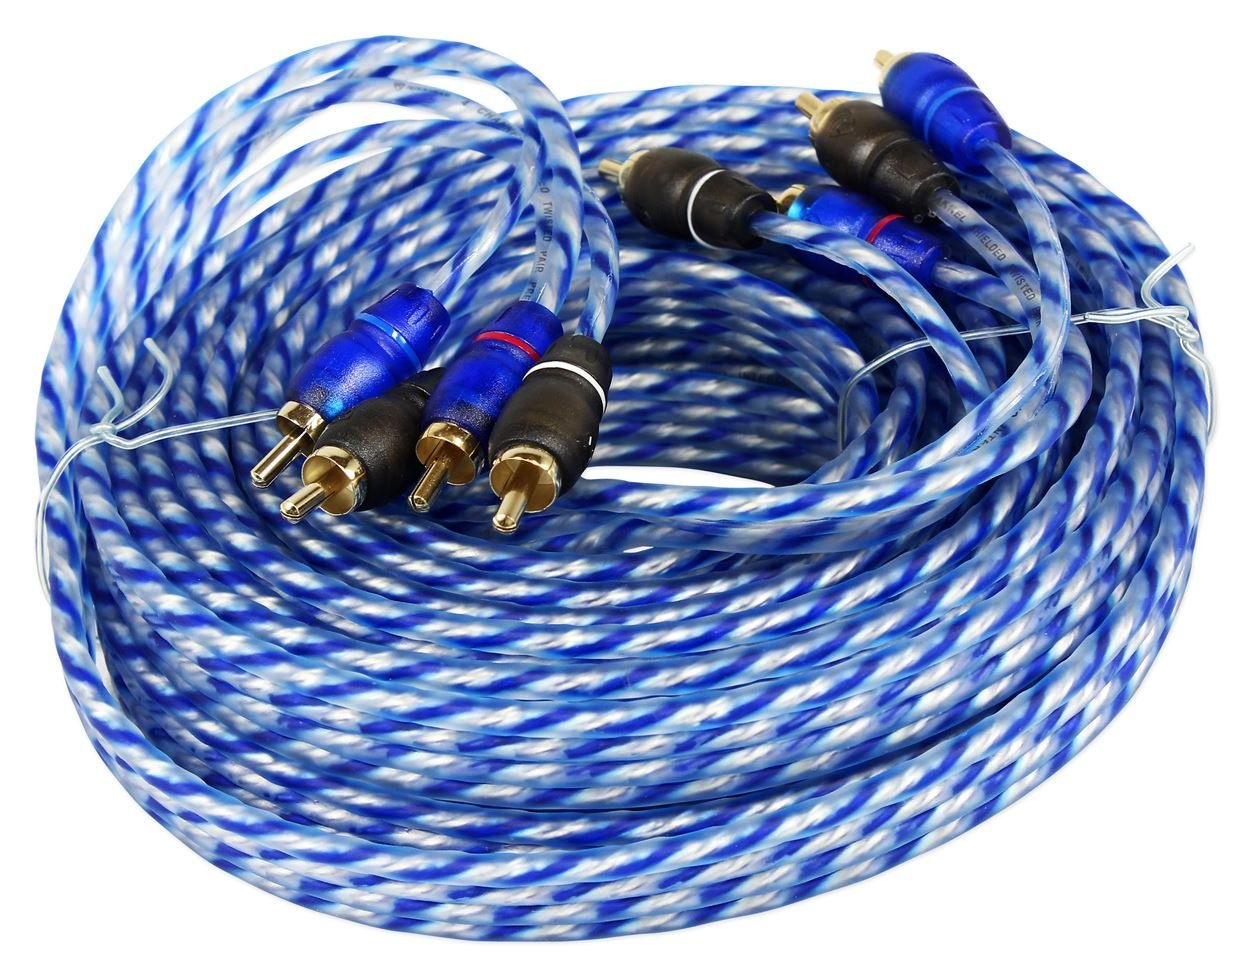 Rockville RTR204 20 Foot 4 Channel Twisted Pair RCA Cable Split Pin, 100% Copper Audiosavings